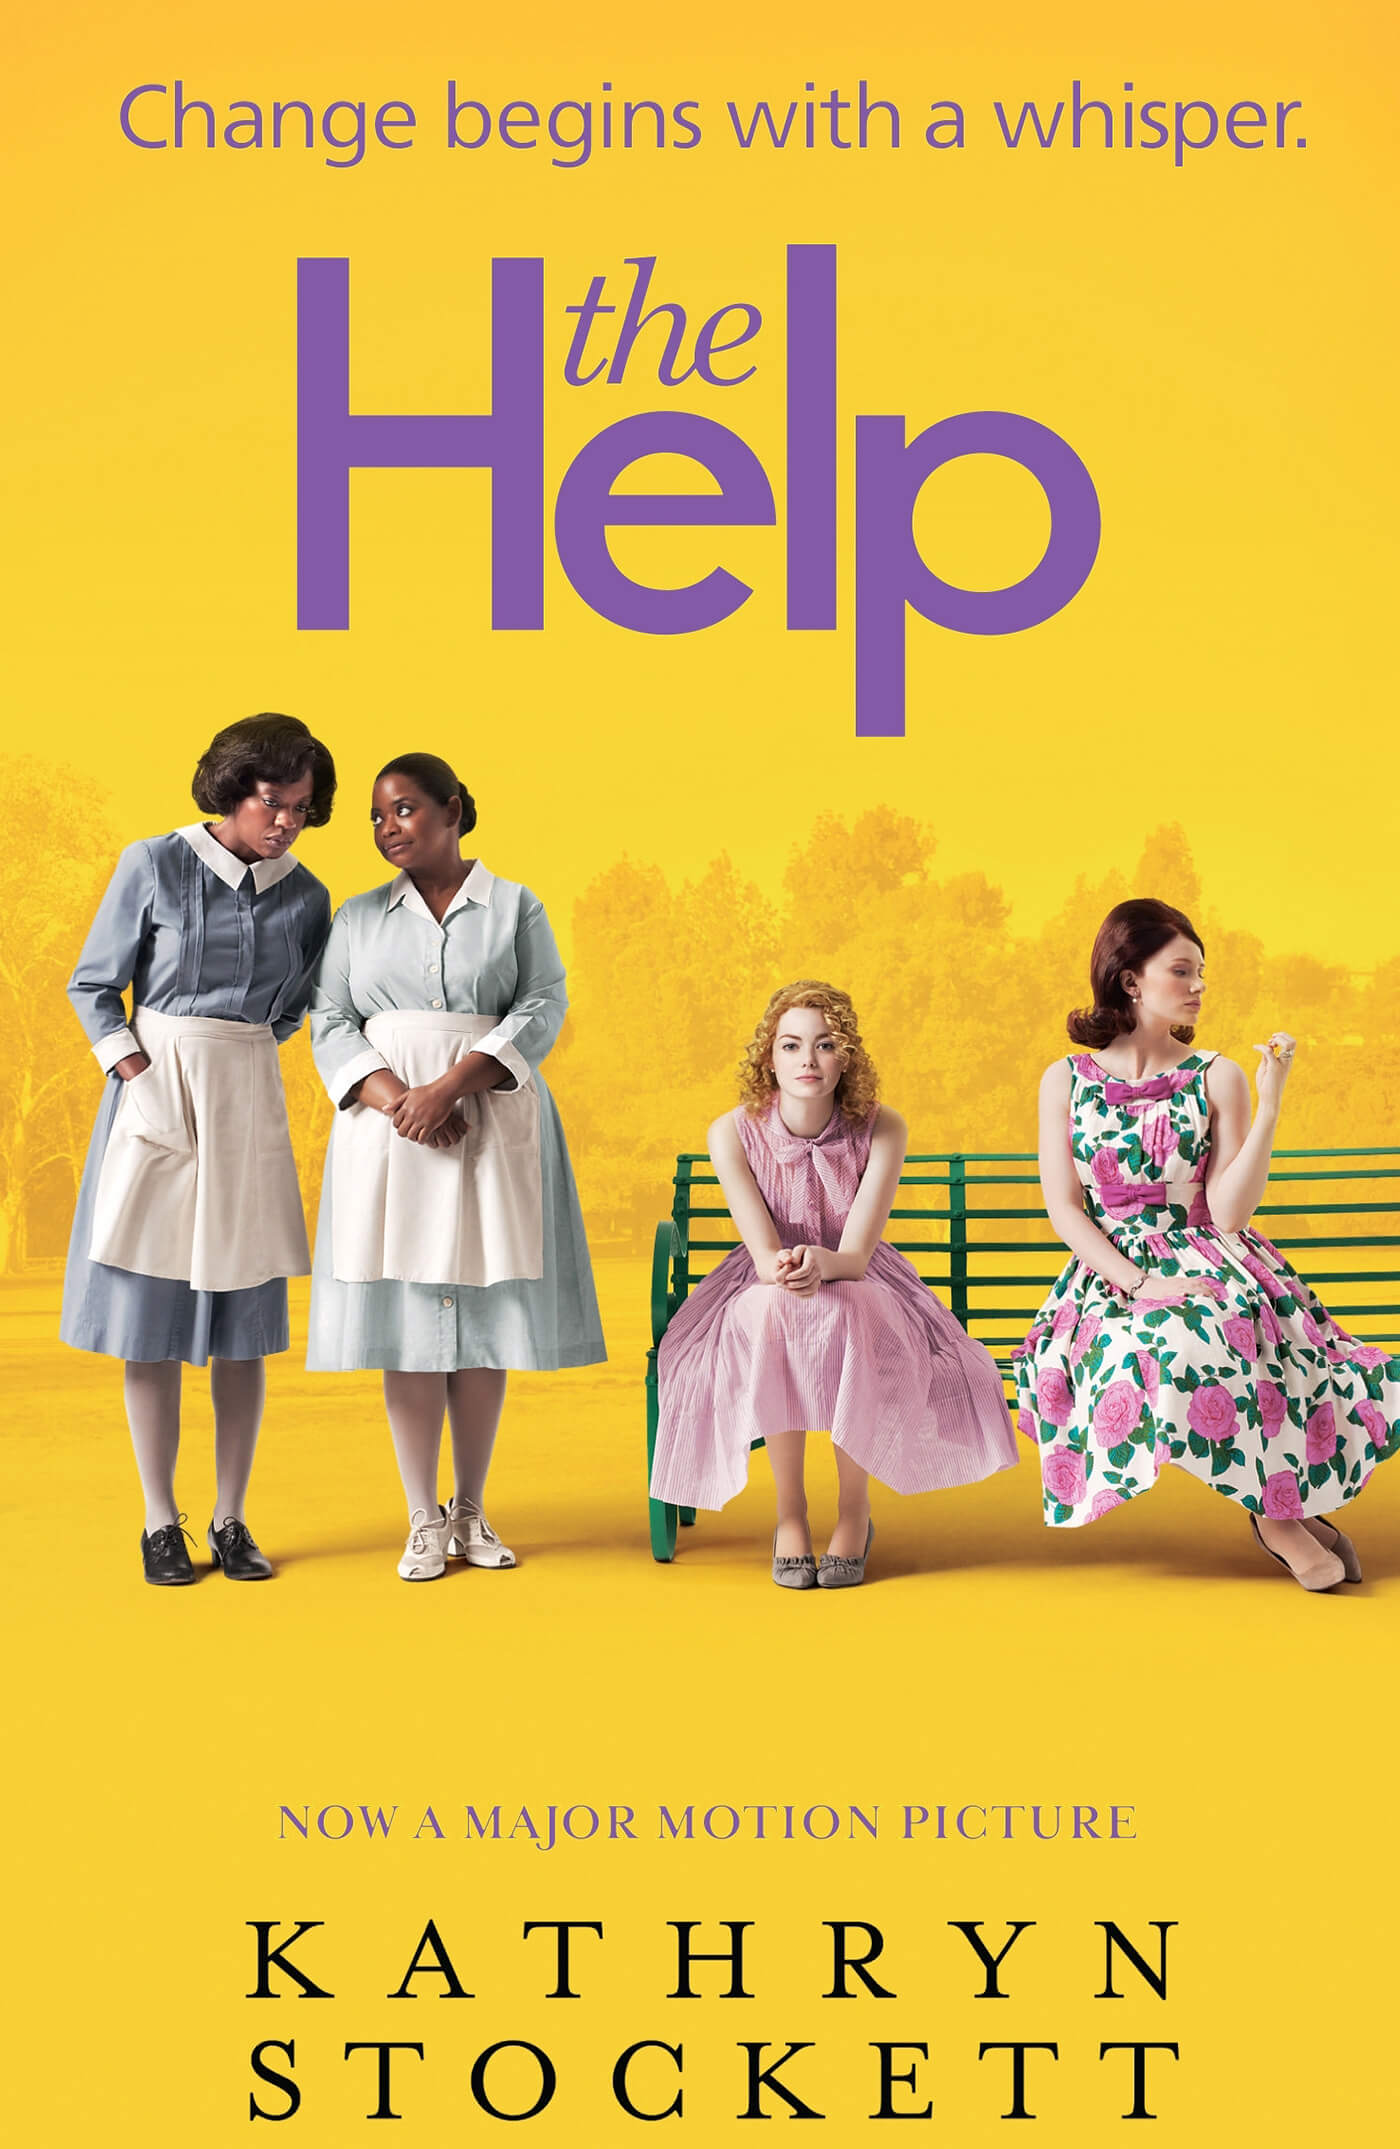 The Help Novel by Kathryn Stockett